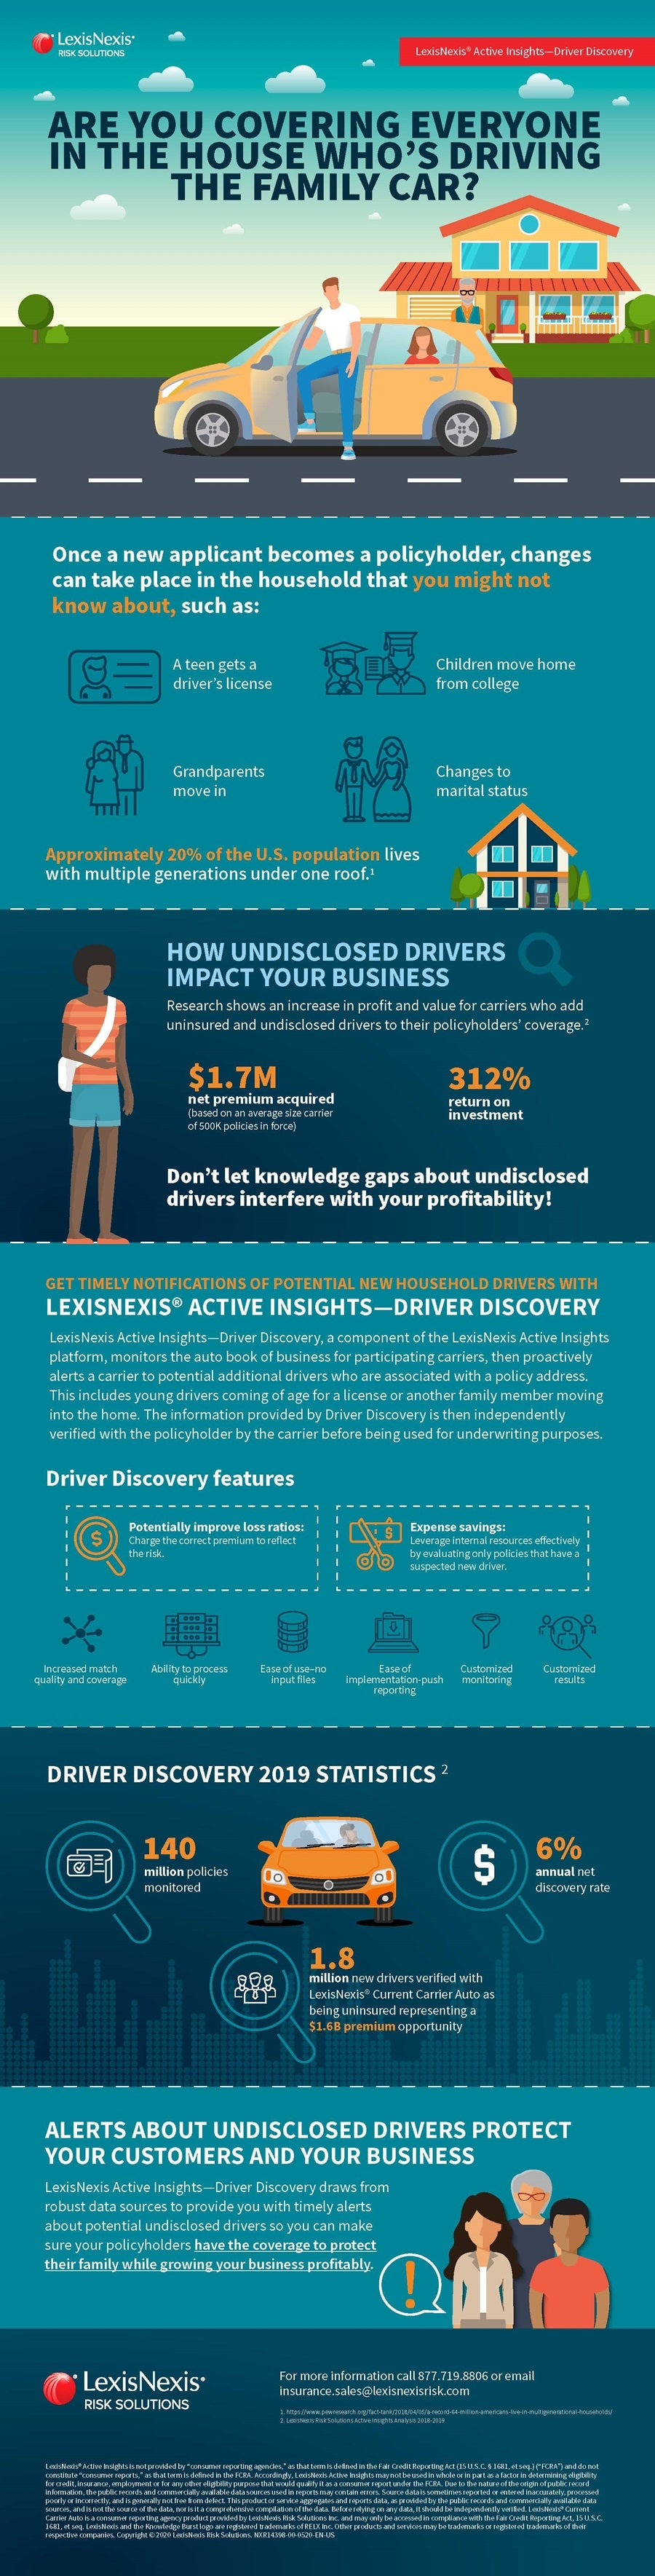 Active Insights - Driver Discovery